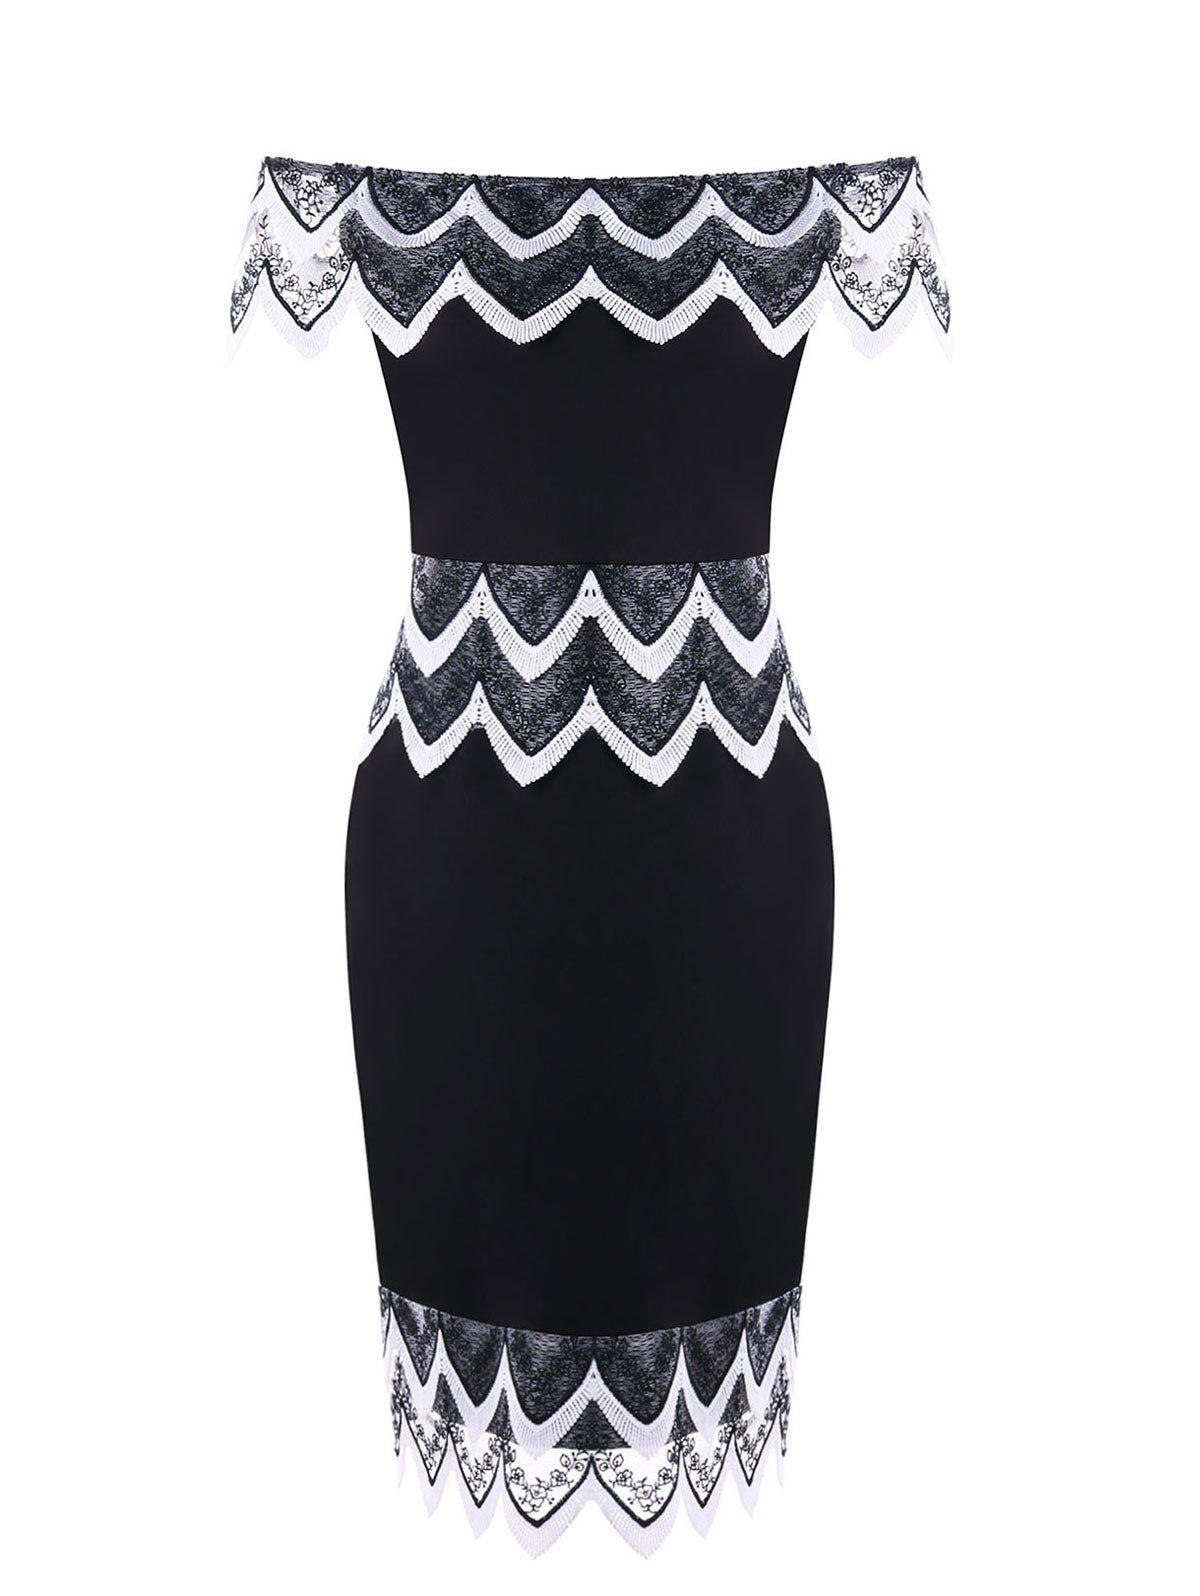 Plus Size Scollpe Edge Pencil Dress - WHITE/BLACK 2XL